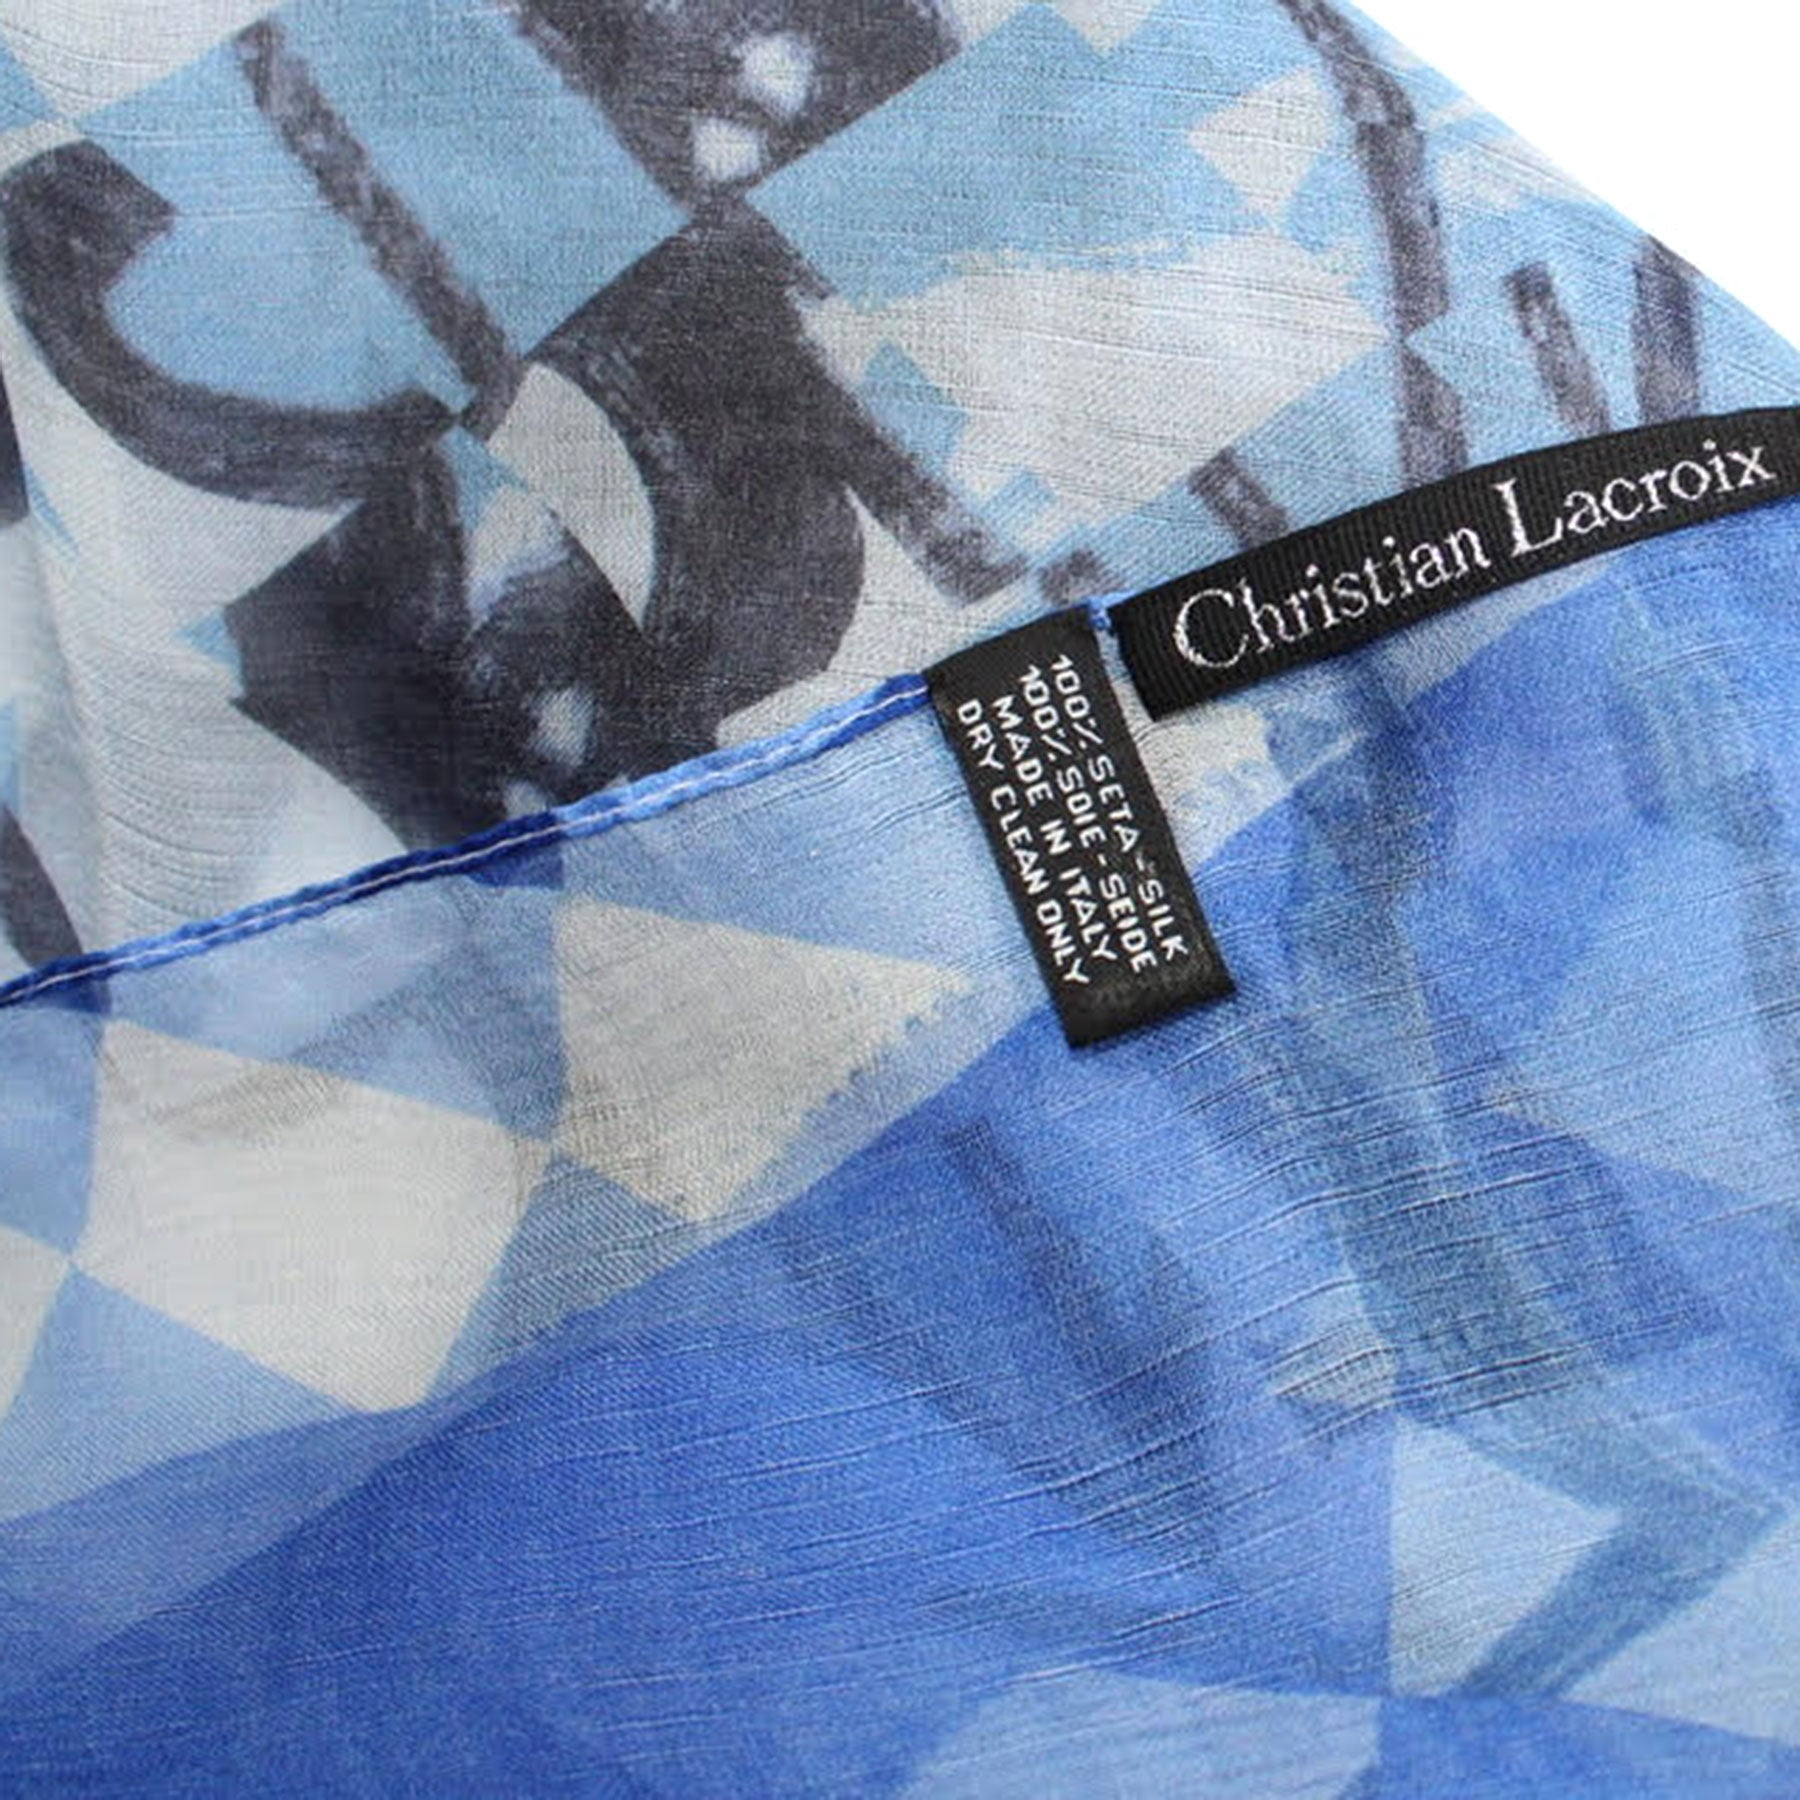 Christian Lacroix Scarf Original Print Royal Blue Dust White Geometric - Extra Large Silk Square Wrap SALE